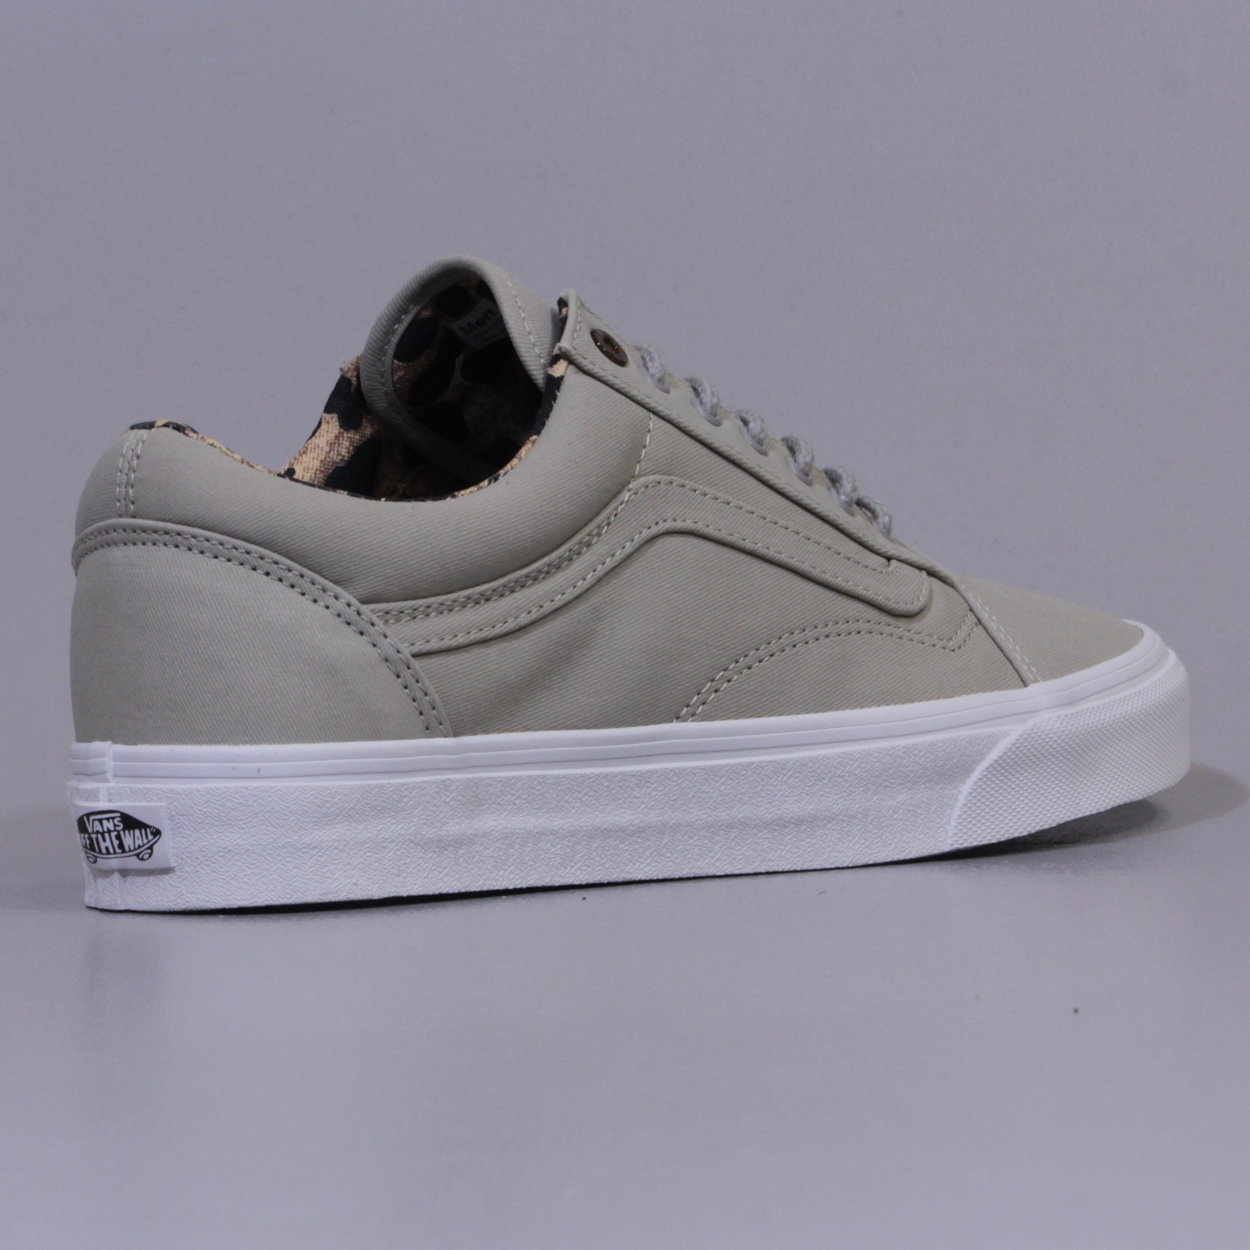 5fdedbfd320 Vans Old Skool Reissue CA Coated Twill Taupe Grey White Tortoise £48.75